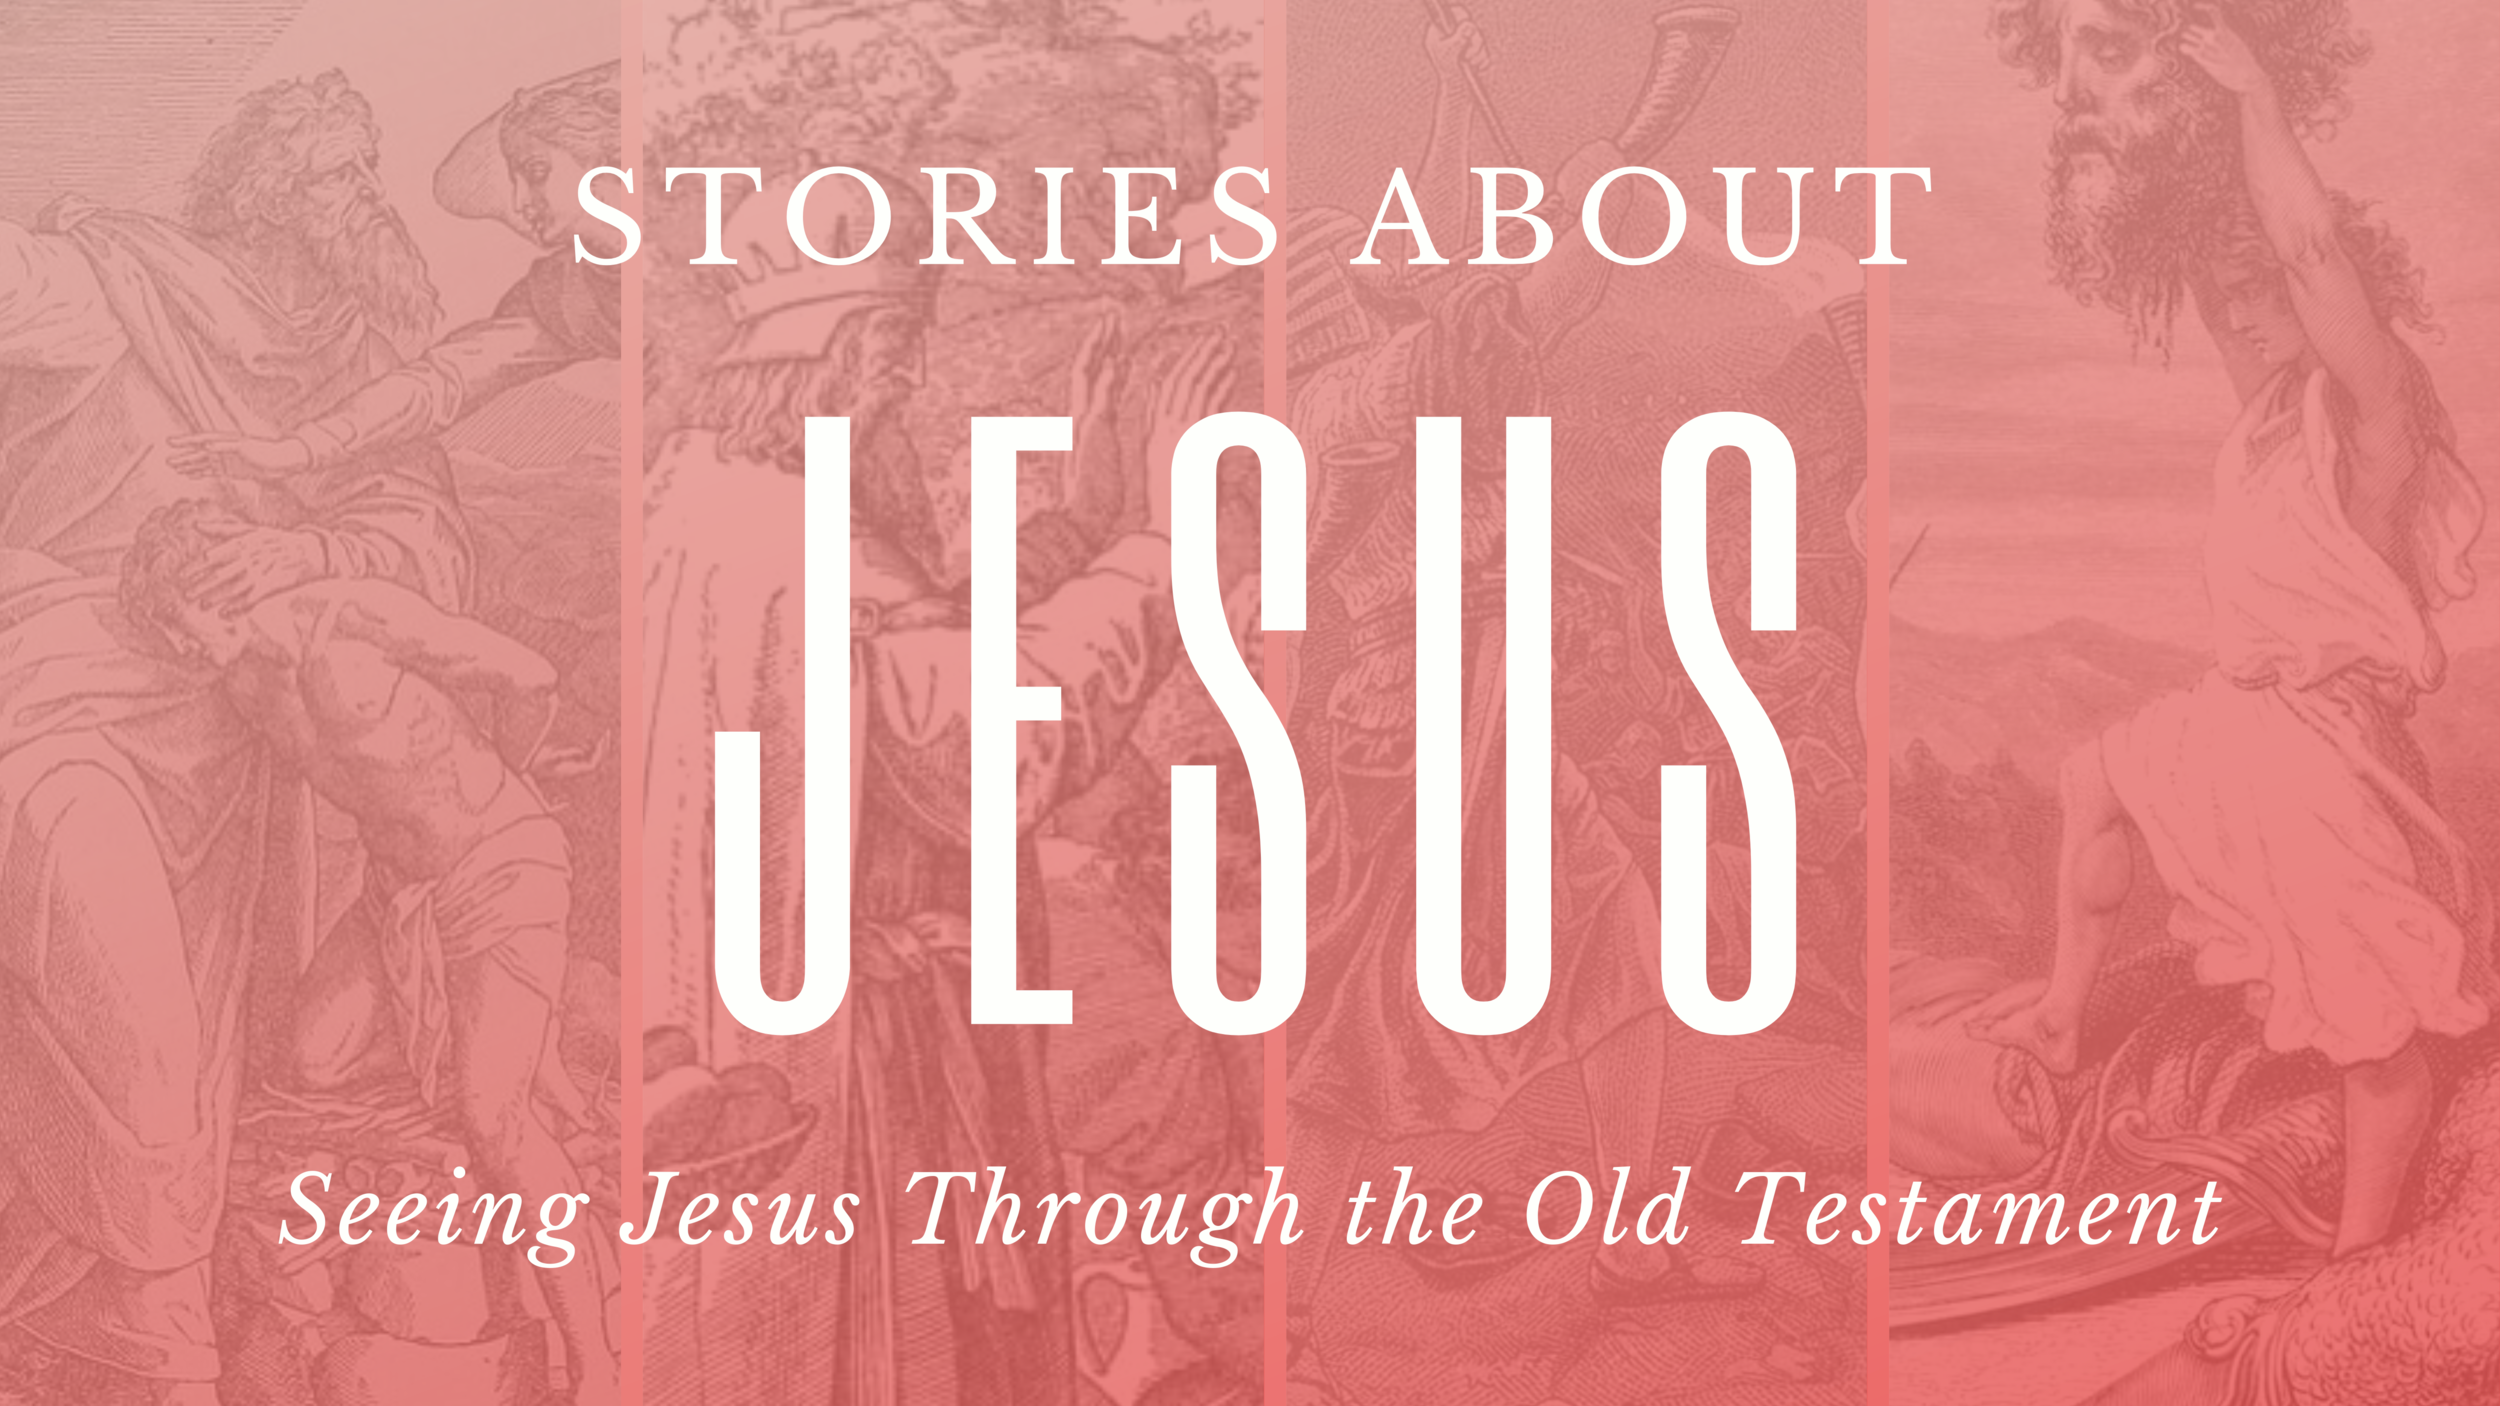 Stories About Jesus.png